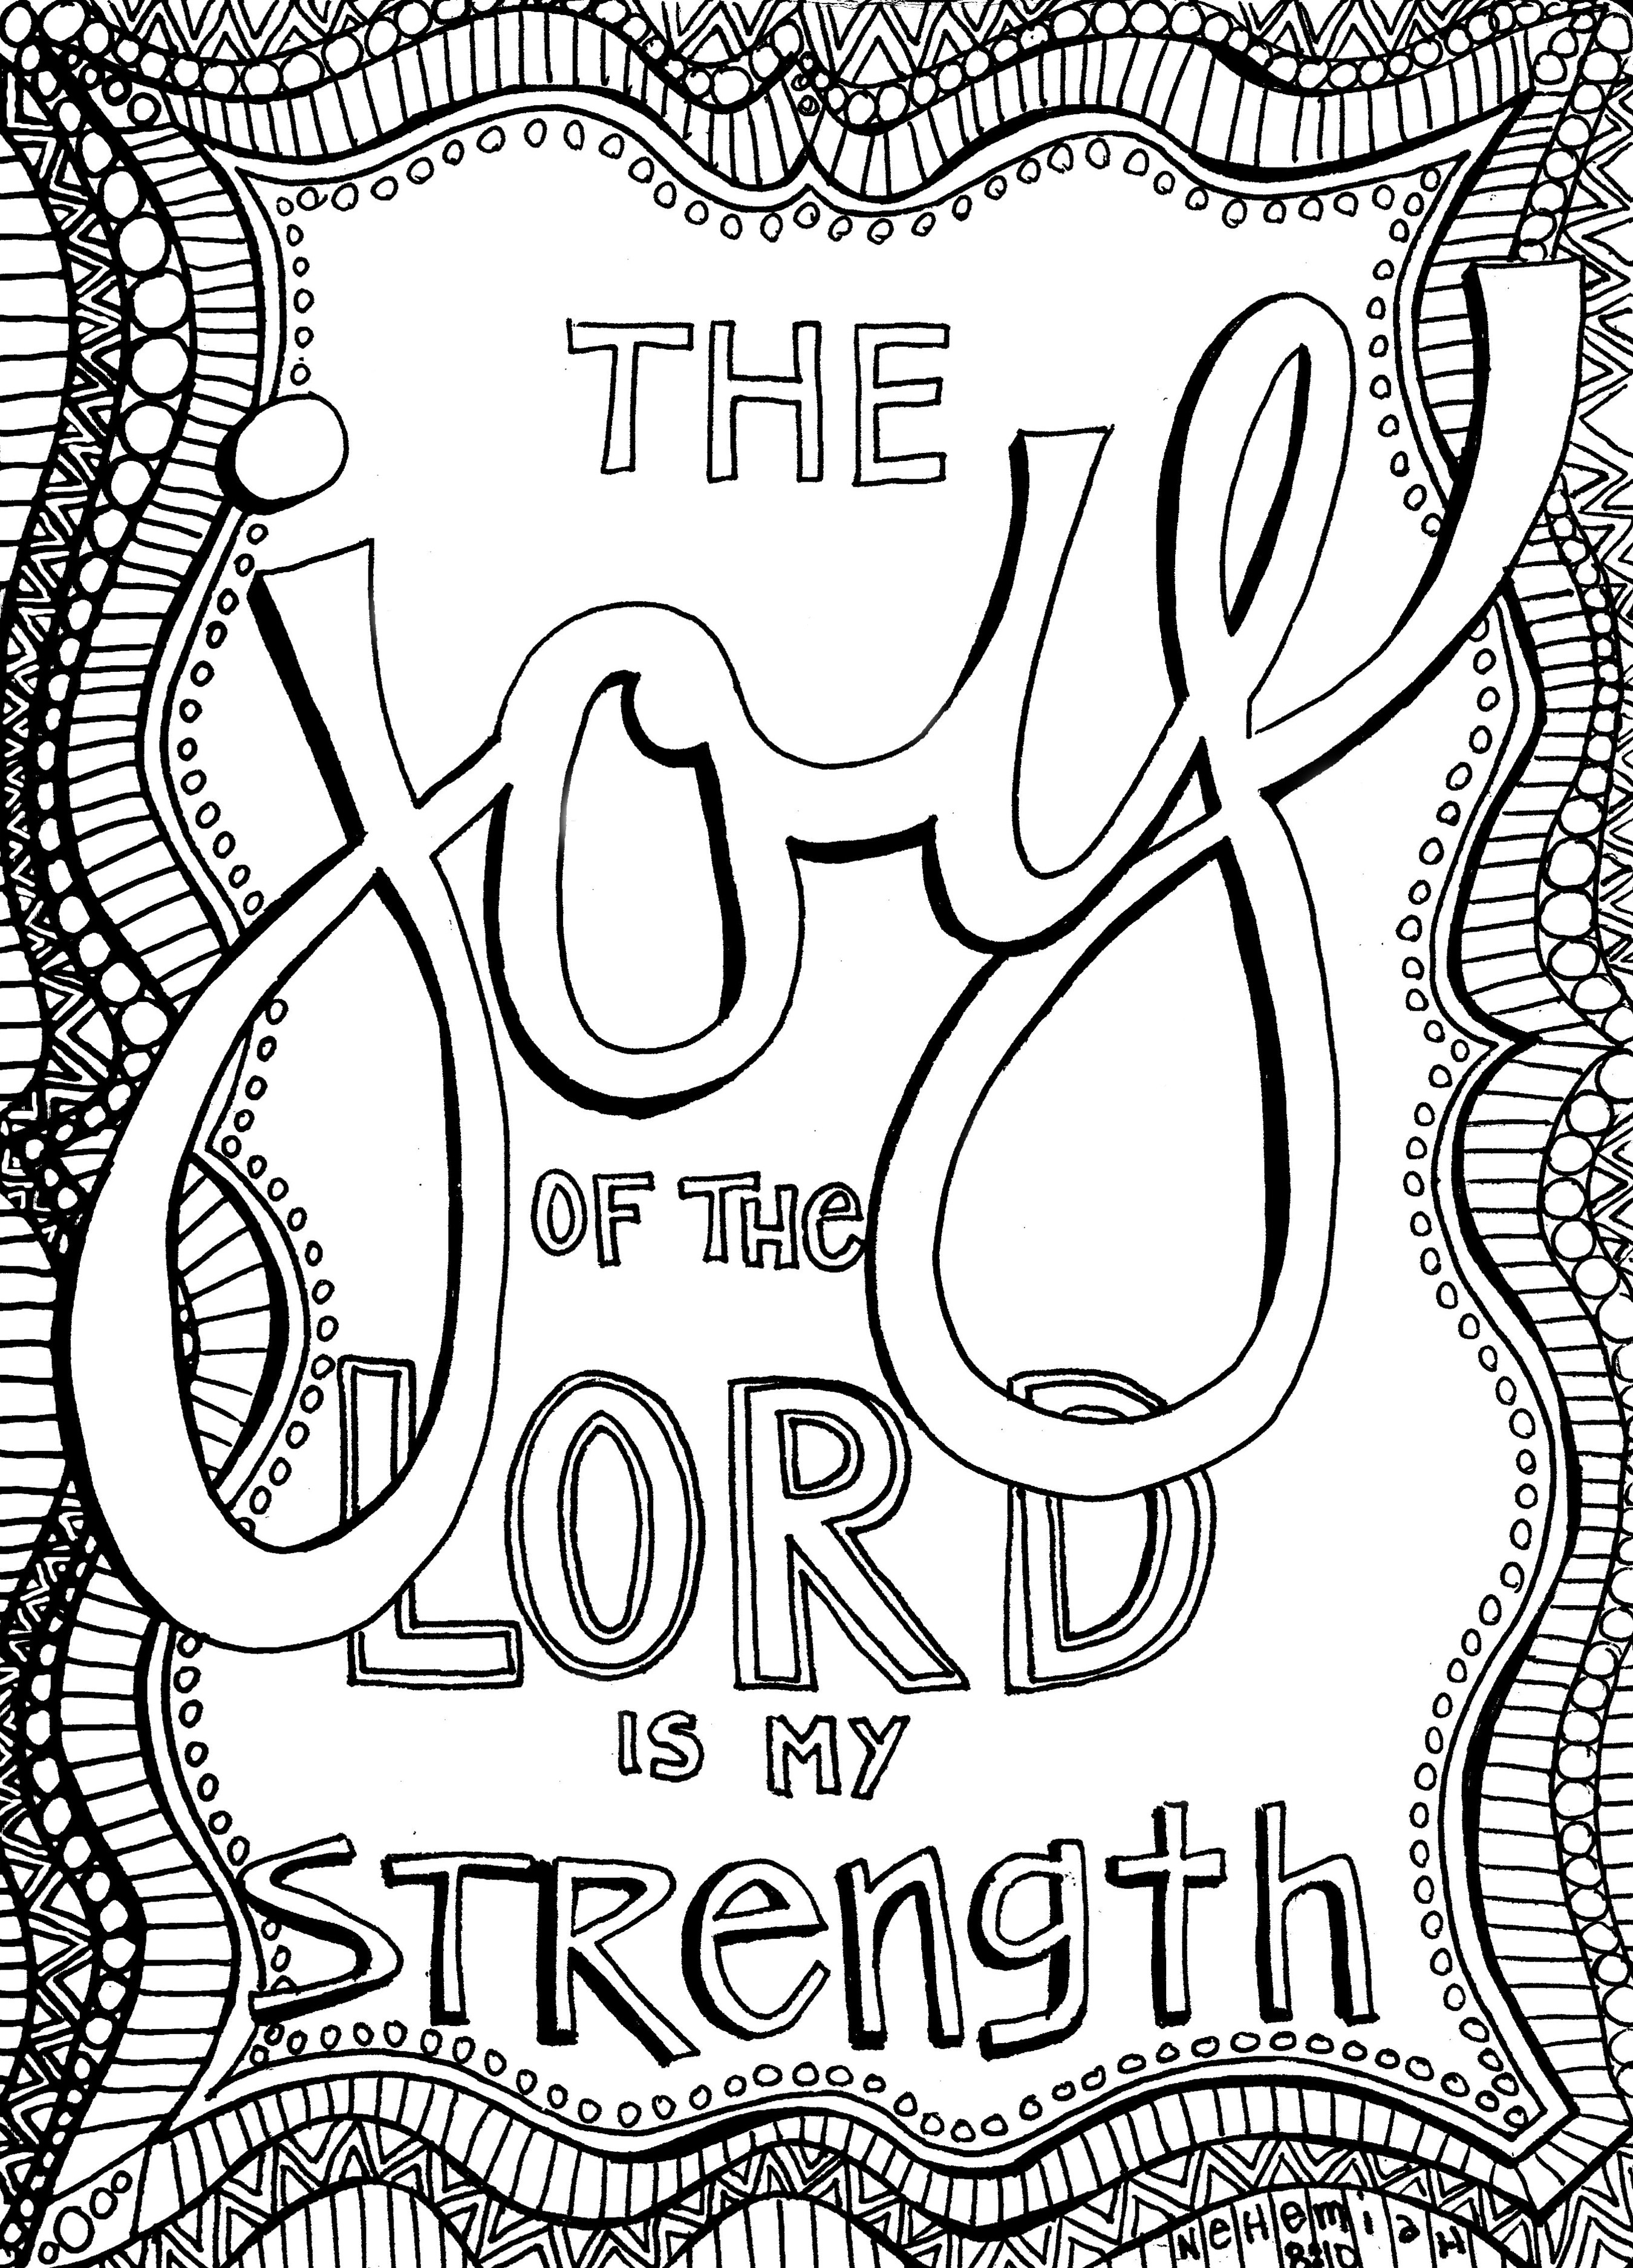 20 Best Christian Coloring Pages for toddlers - Home DIY ...